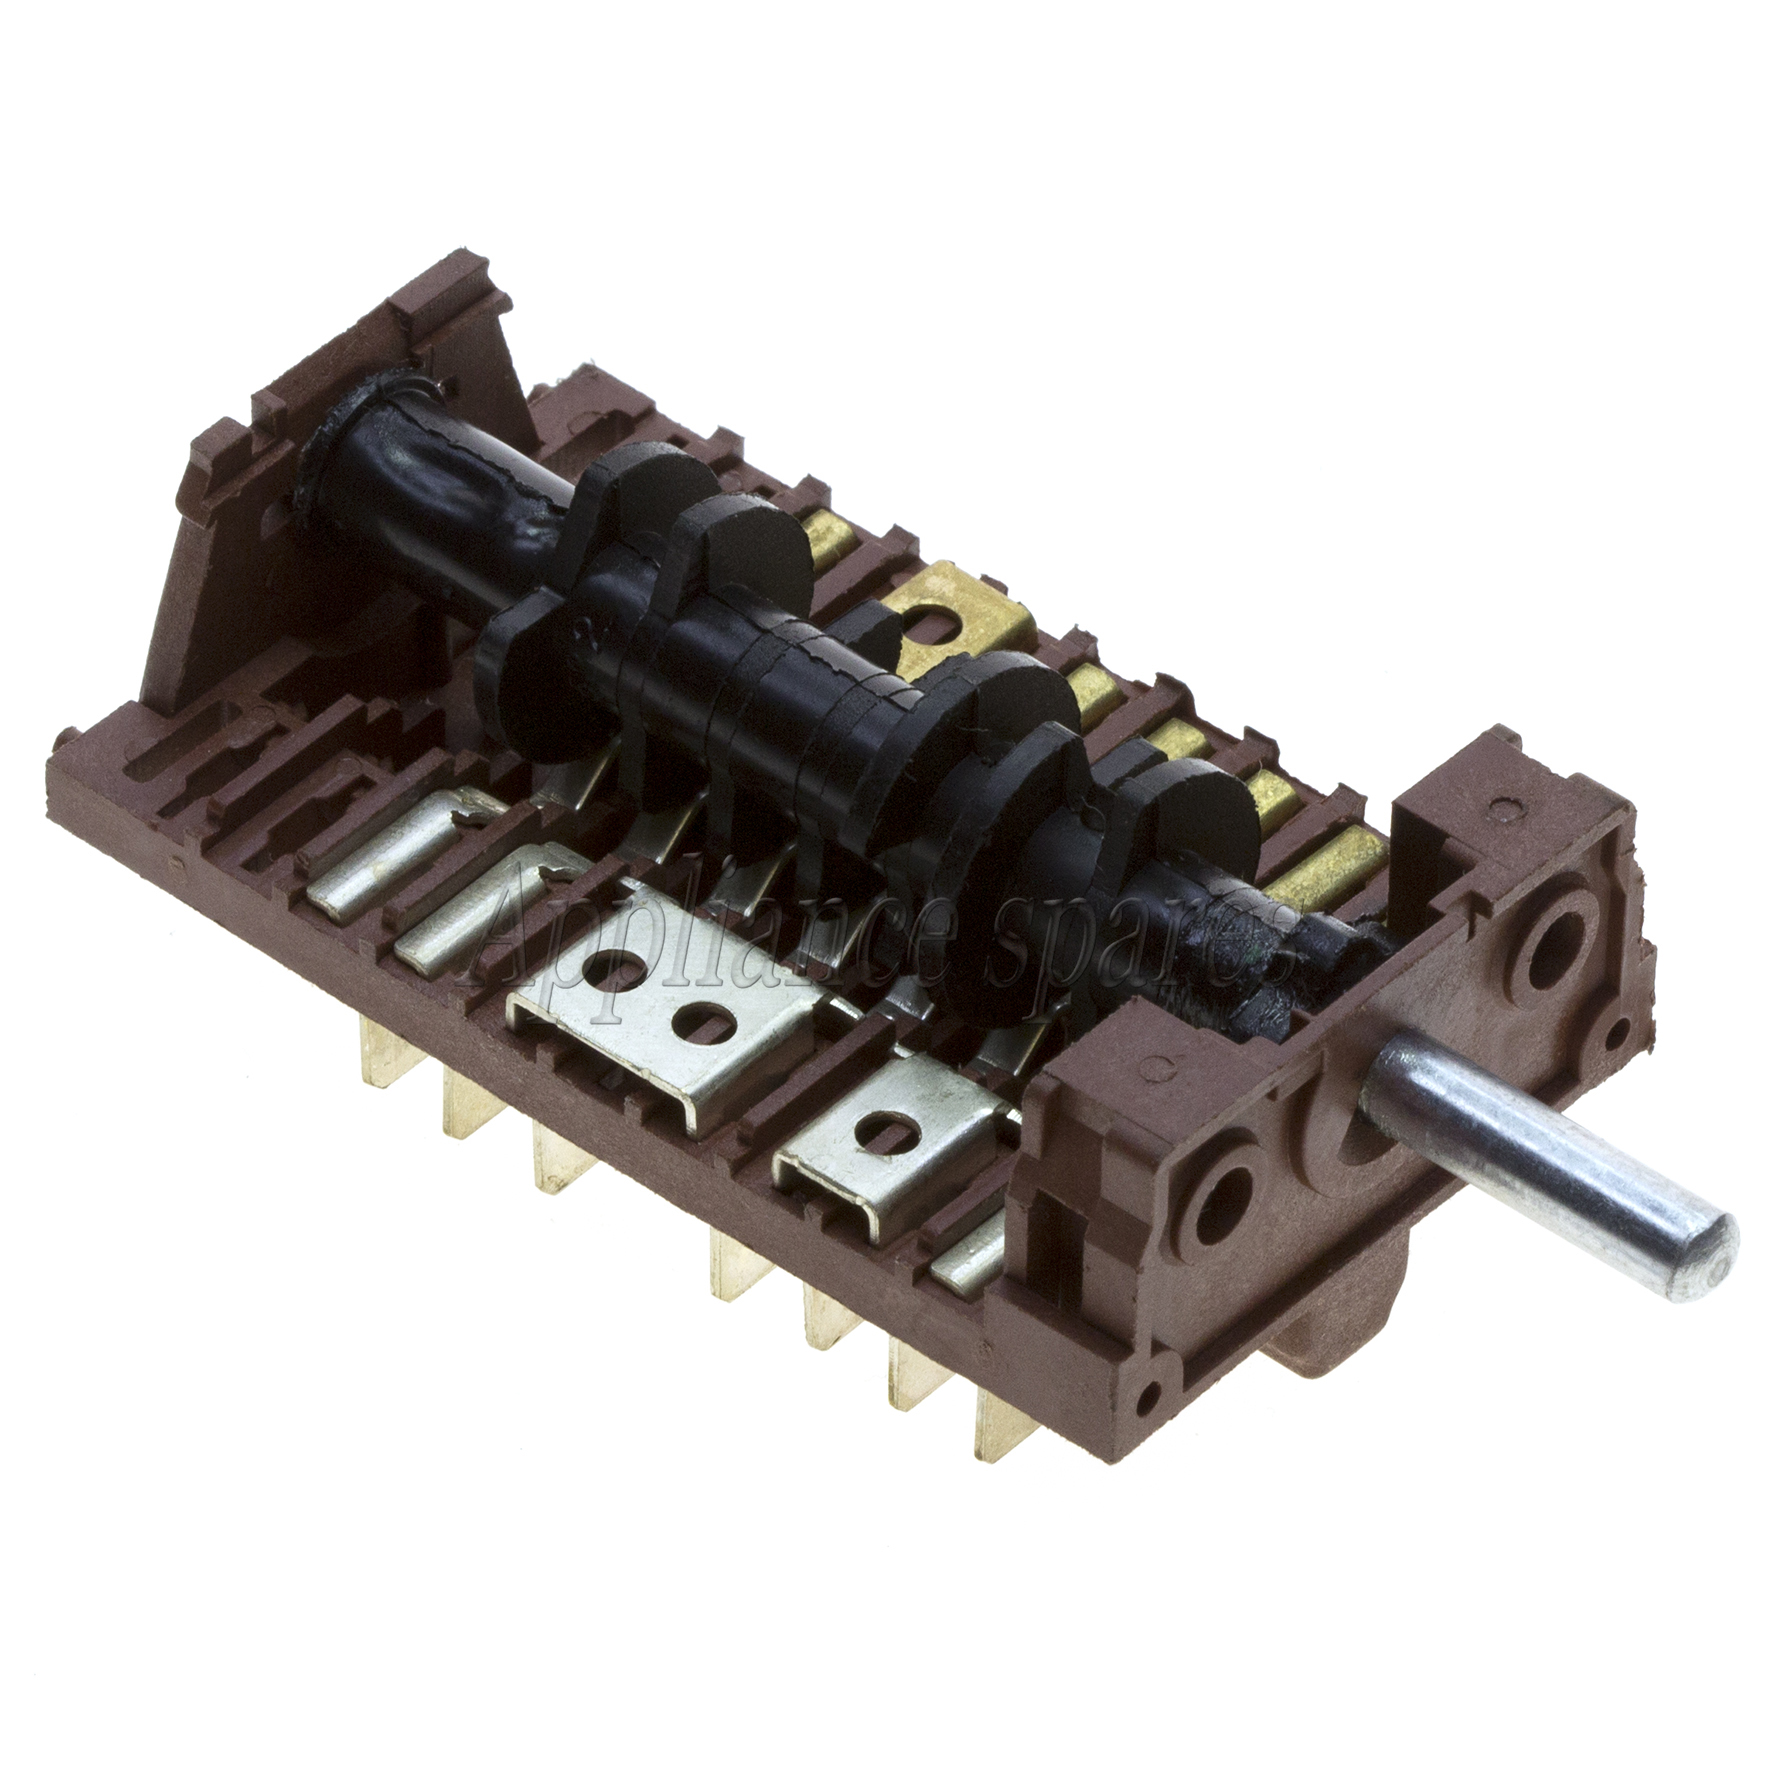 Instrument X Former in addition Galvanometer further OEM Systems Lighting Control For Lutron Universal Control GRX CBL 346S Equal Cable as well Product details in addition Kelvinator 20selector 20switch 2033301003. on number 1 copper wire